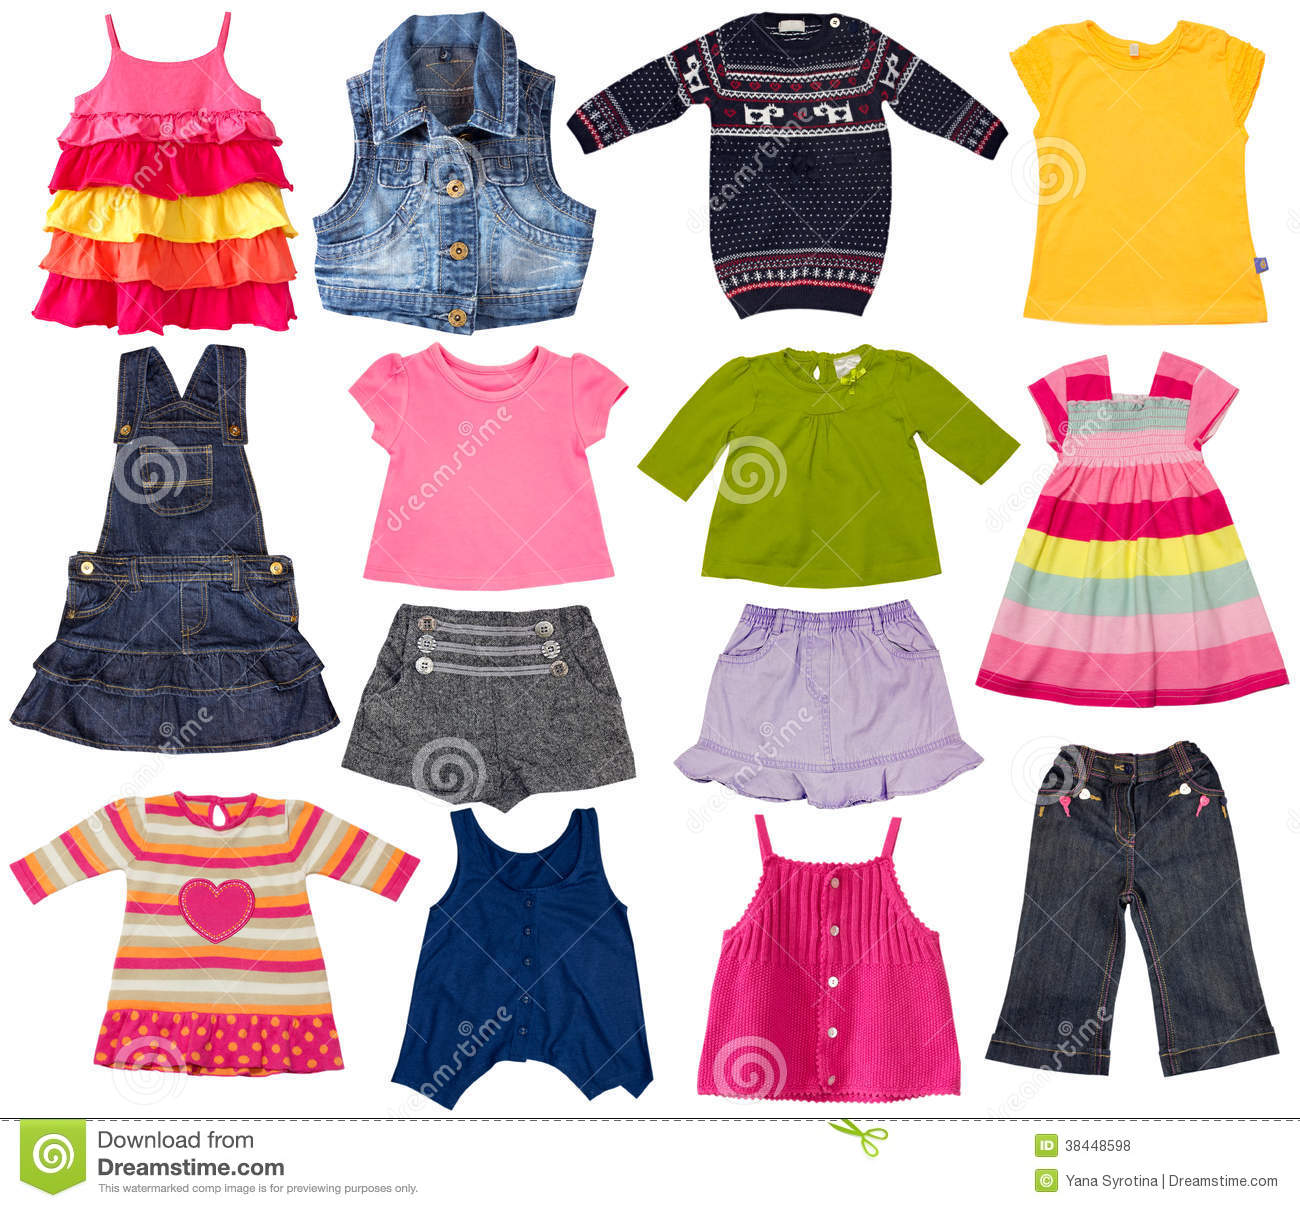 19bdeb52e560 Kids Fashion Clothes Isolated On White. Stock Photo - Image of body ...